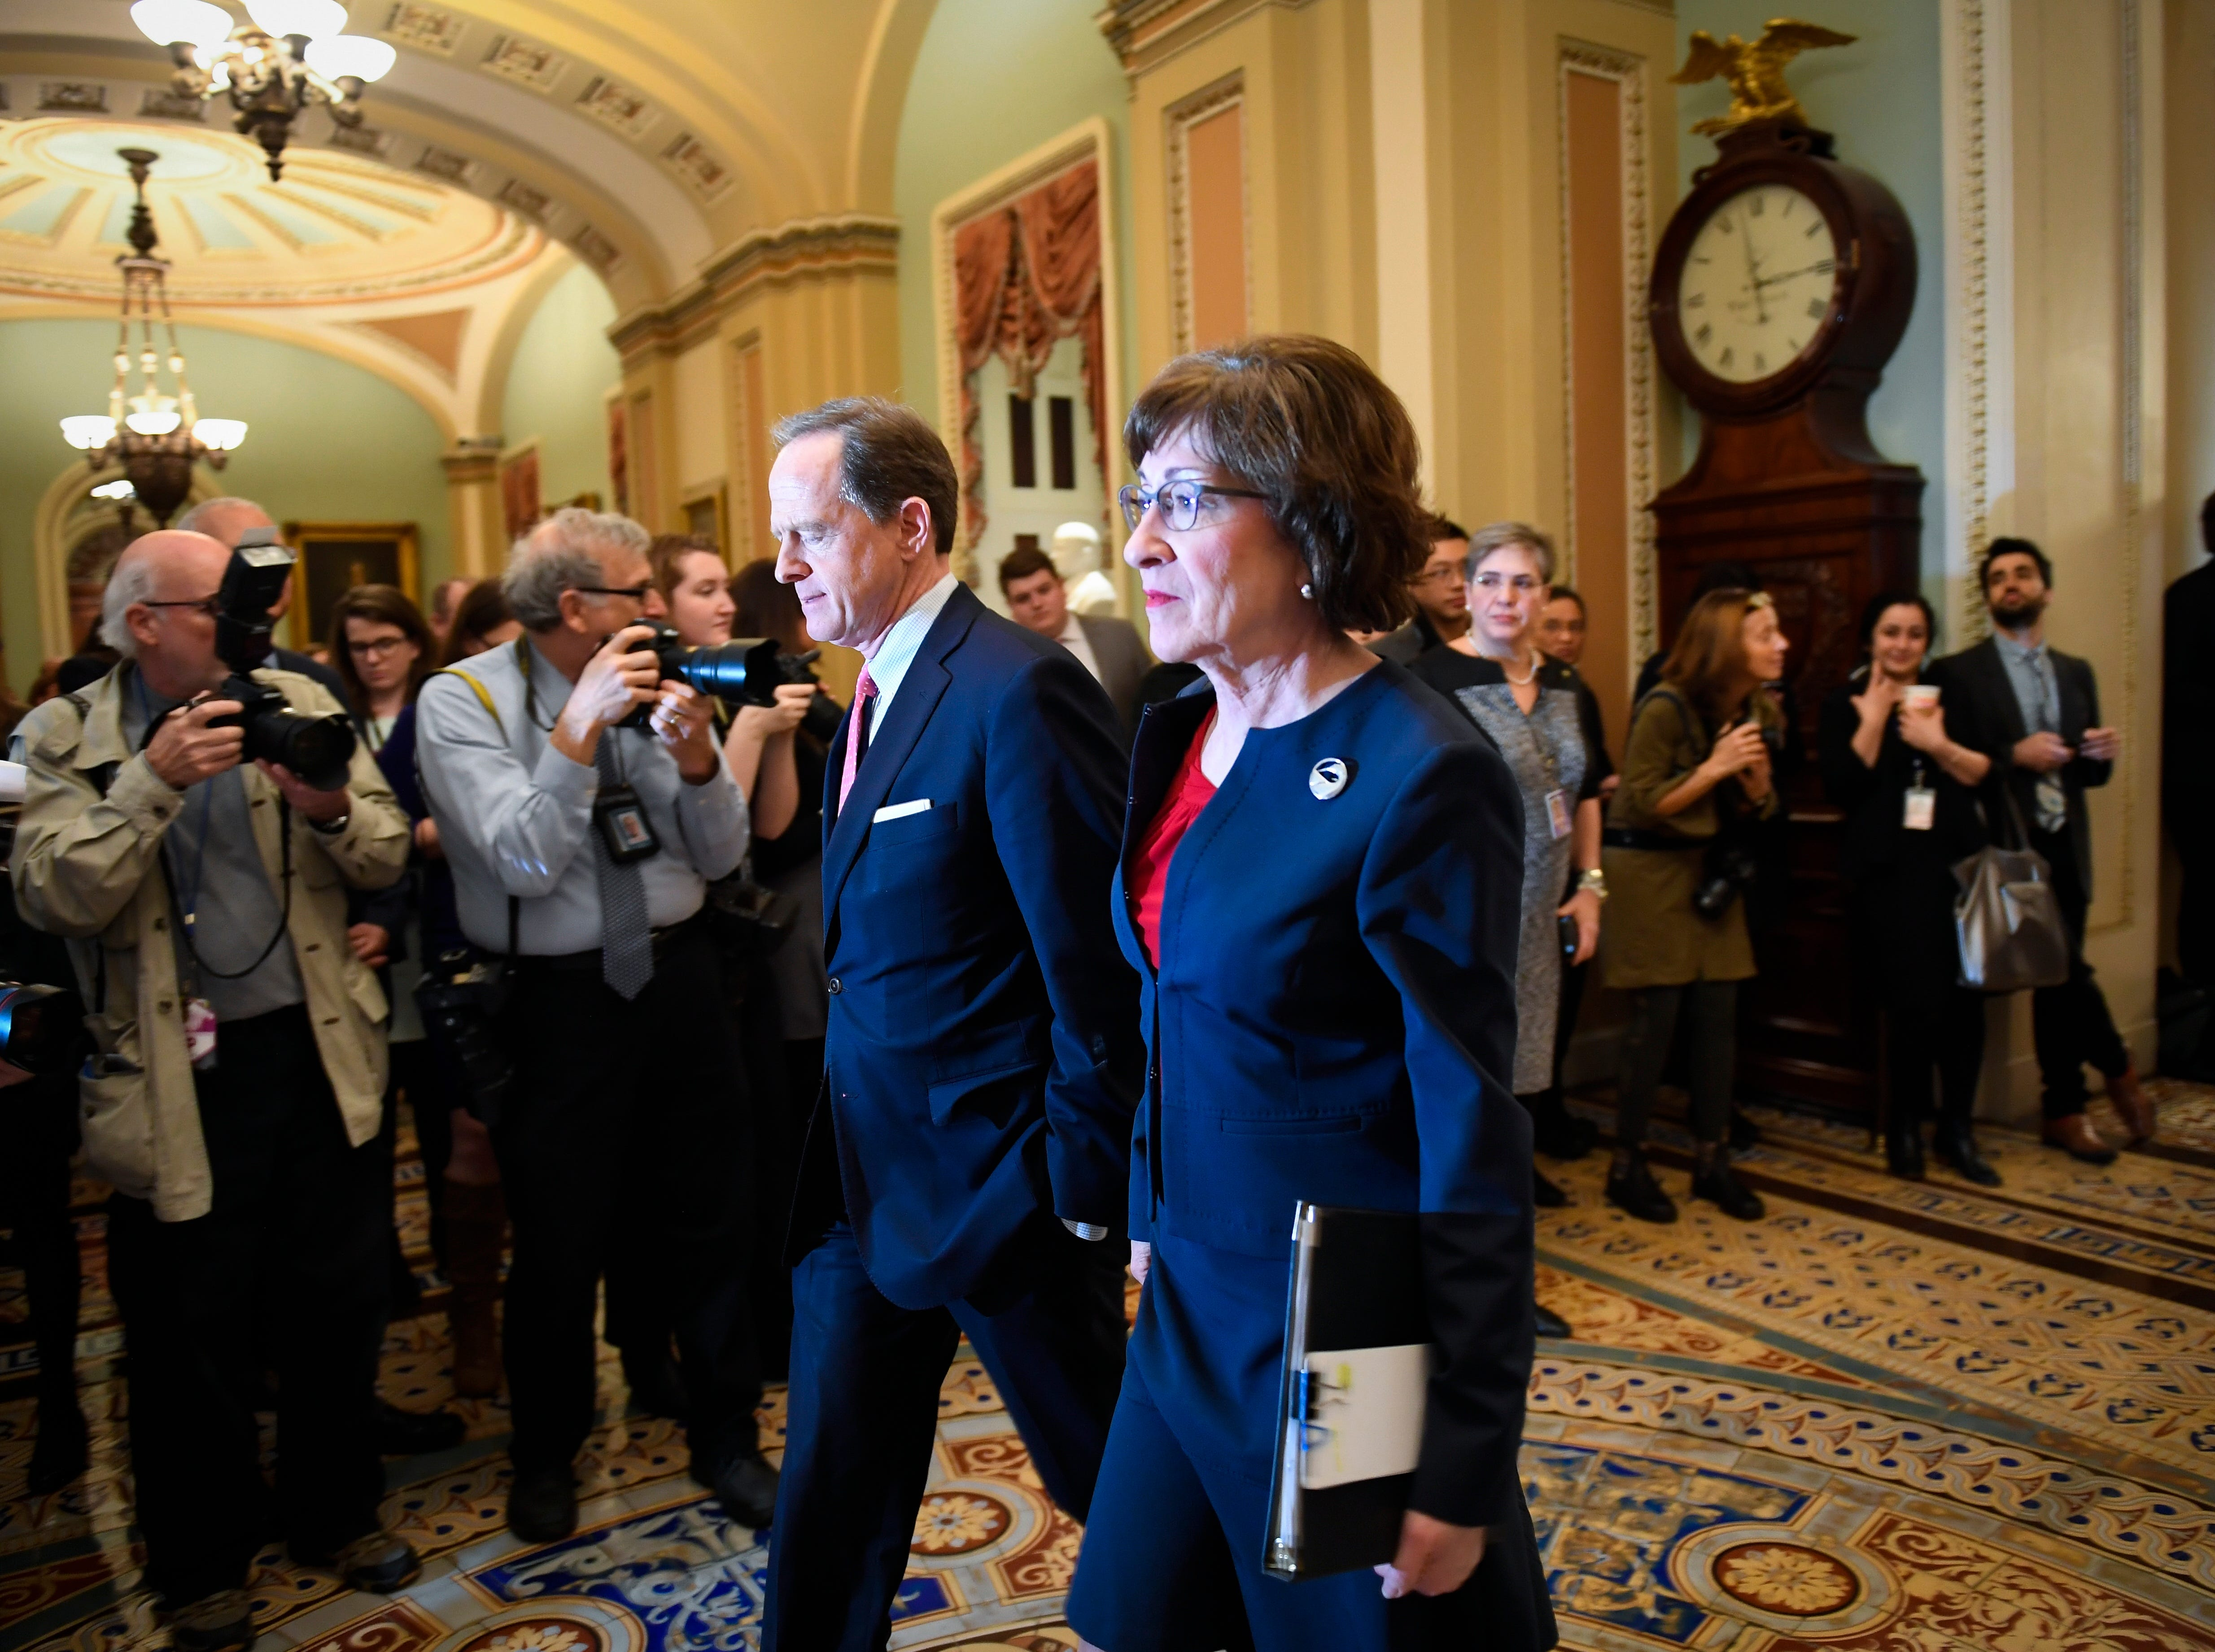 Senator Susan Collins (R-ME) and Senator Pat Toomey (R-PA) walking into the Senate Chambers before the Senate voted to reject a pair of dueling bills Thursday to fund the federal government and end the longest partial government shutdown in history.